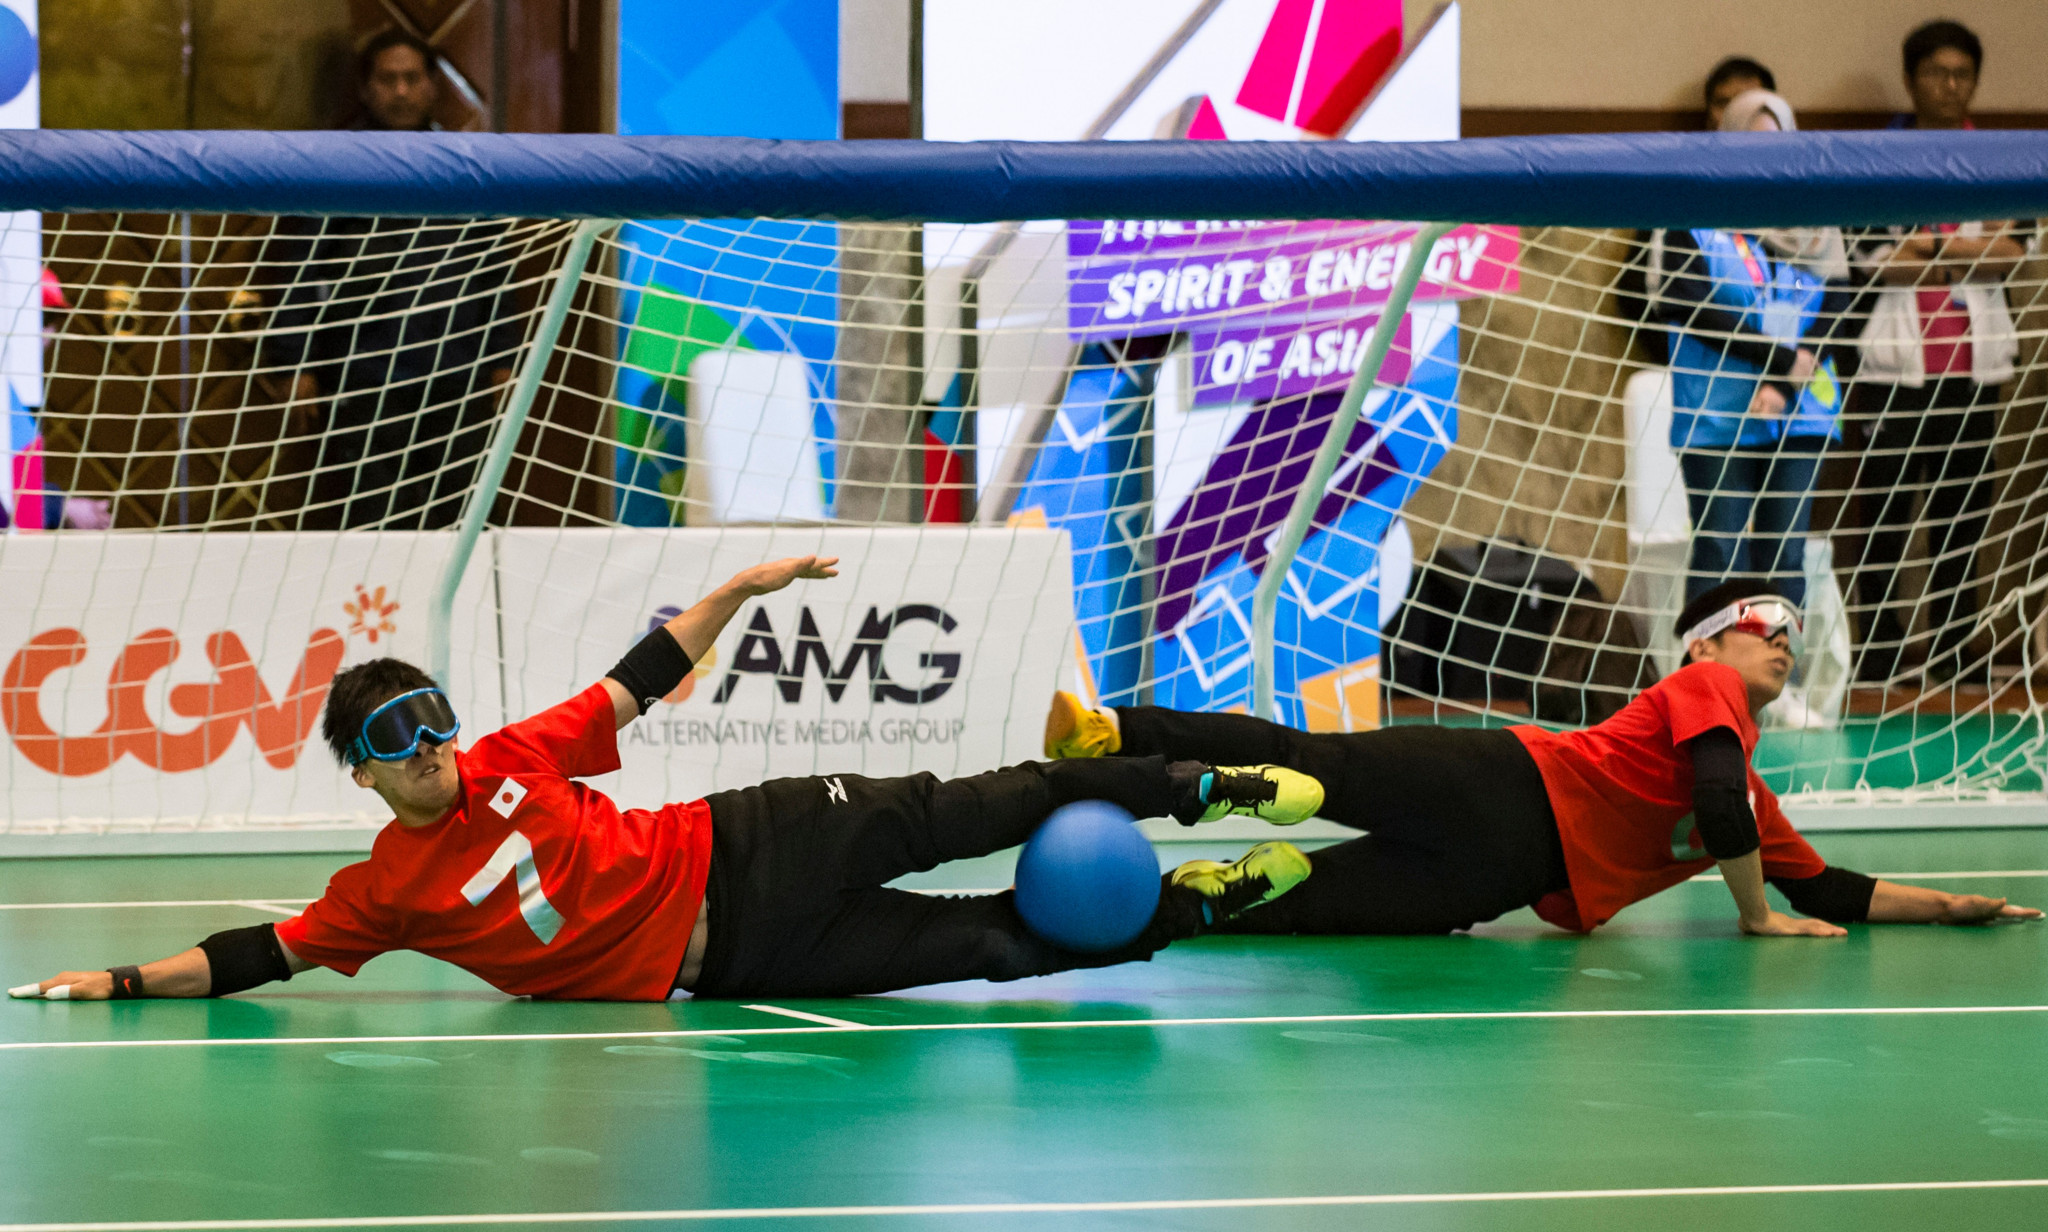 IBSA announce hosts of three key goalball events in 2019